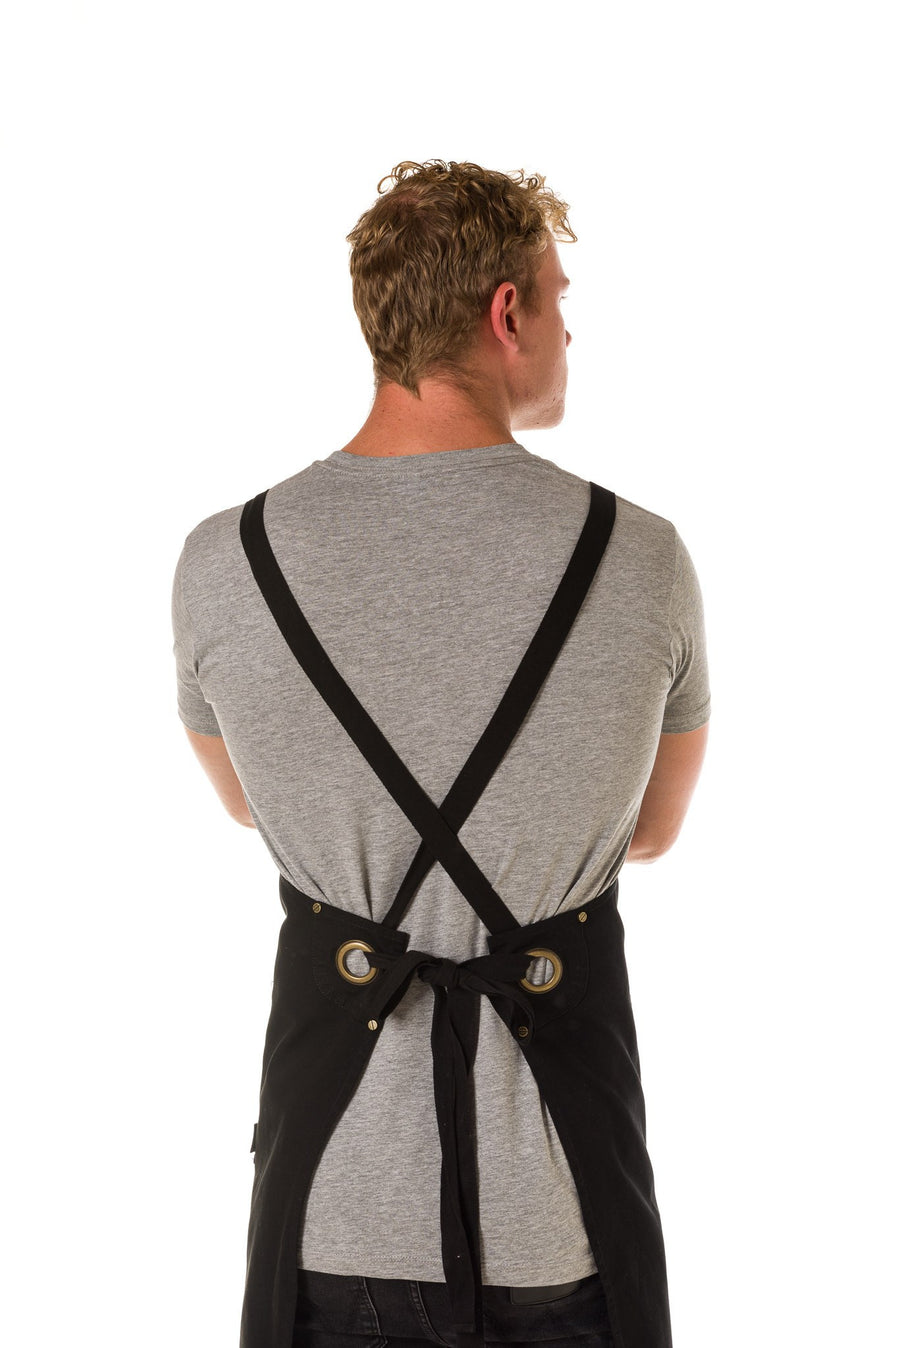 ARCHIE Apron with textured tape straps - Black Canvas